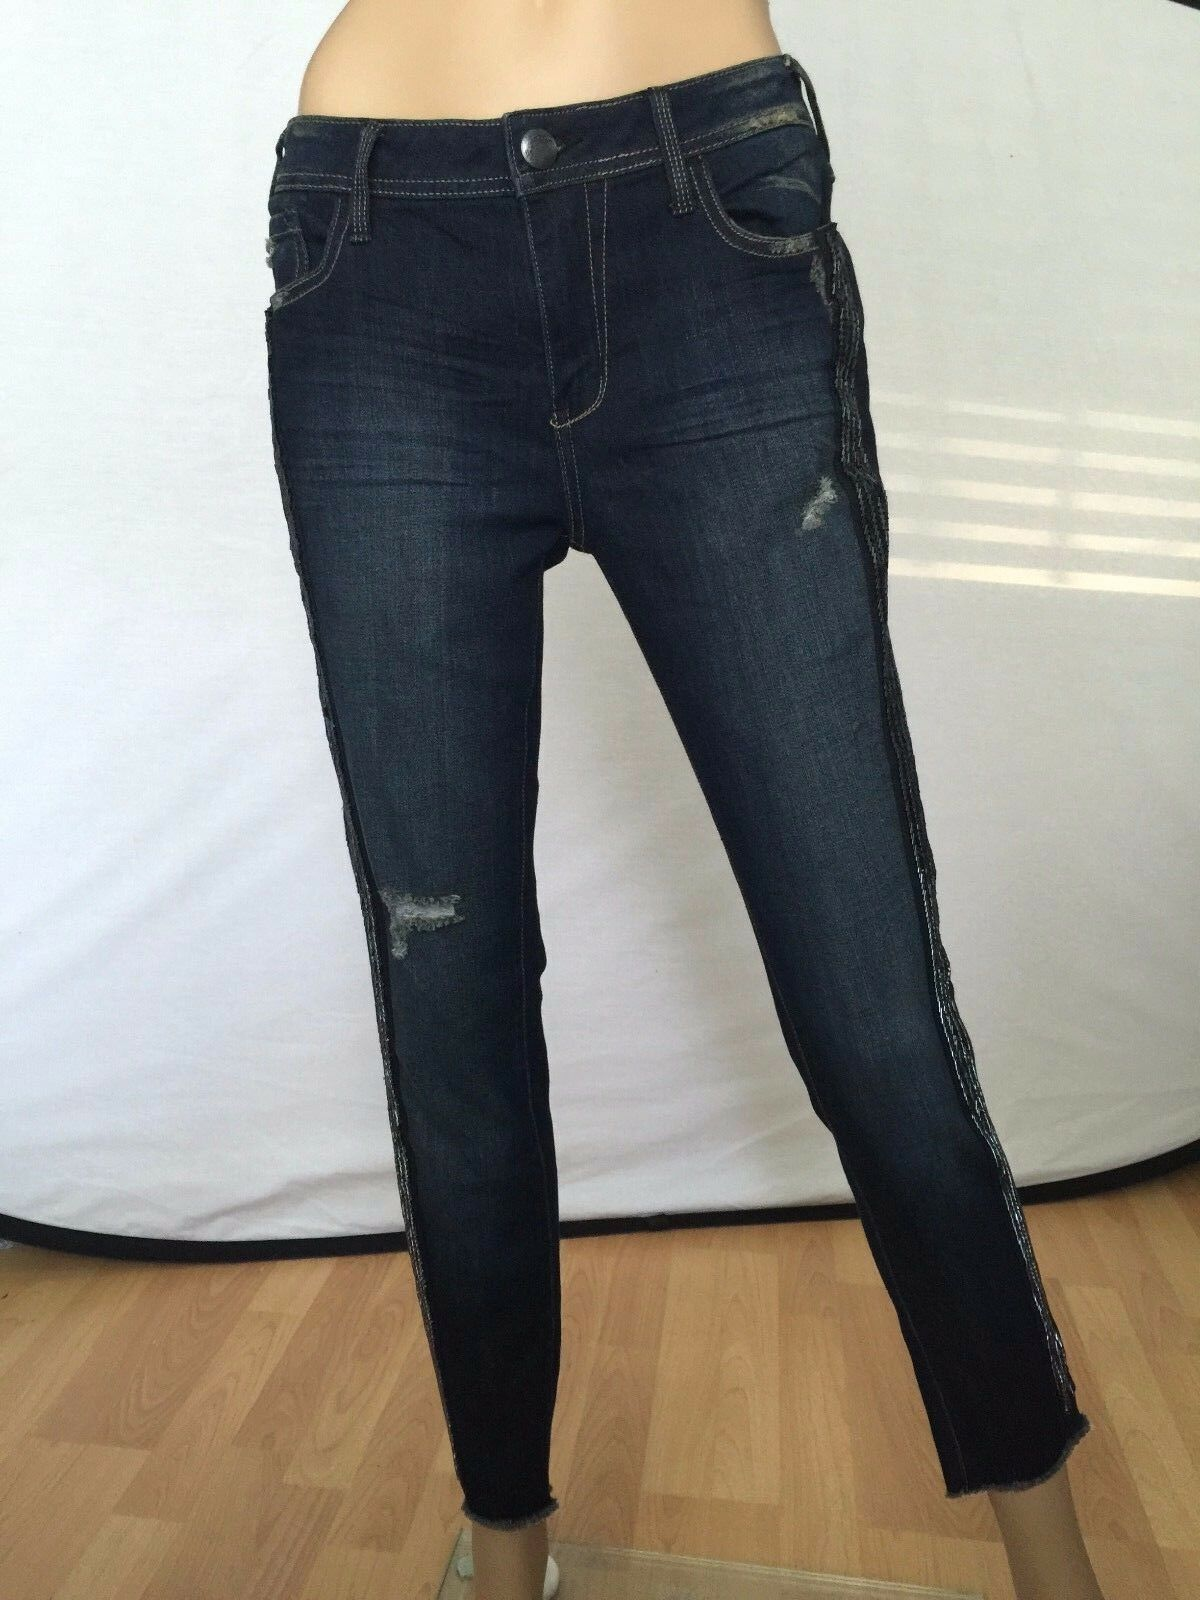 New Free People Denim bluee Skinny Pants Sequin Jeans Size 28